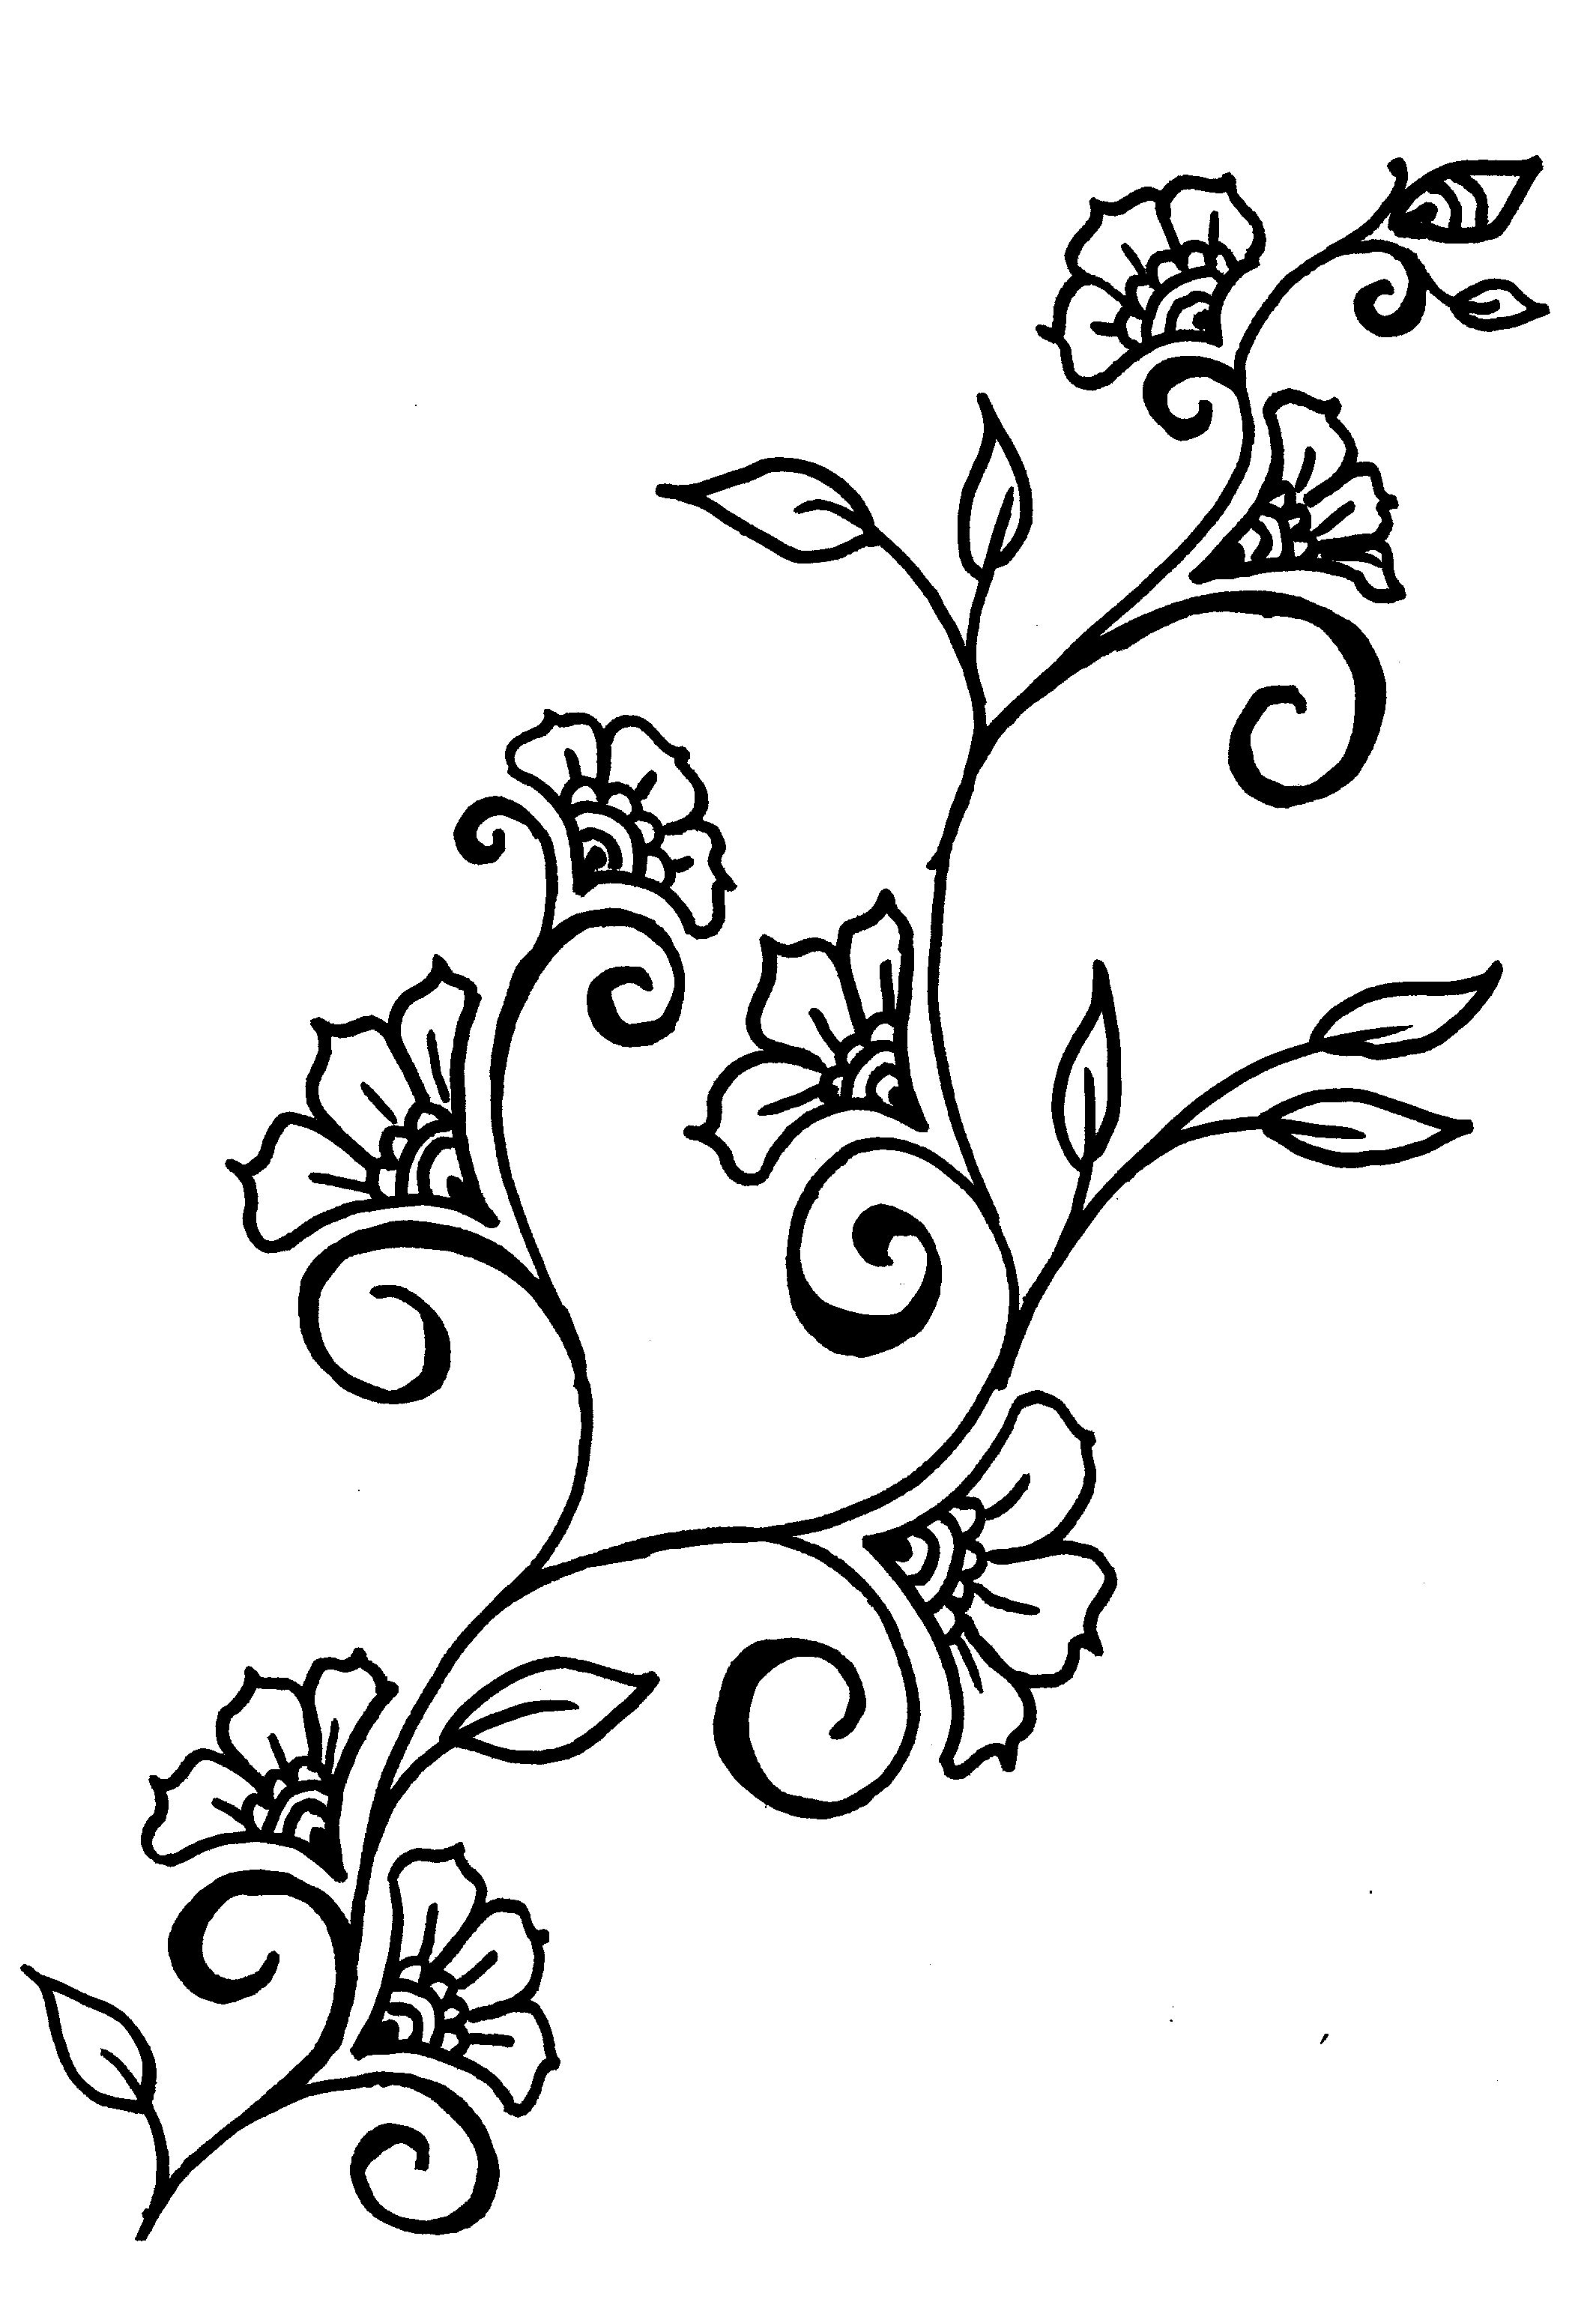 Drawings Of Rosd Vines Henna Inspired Design Ideas Leaves And